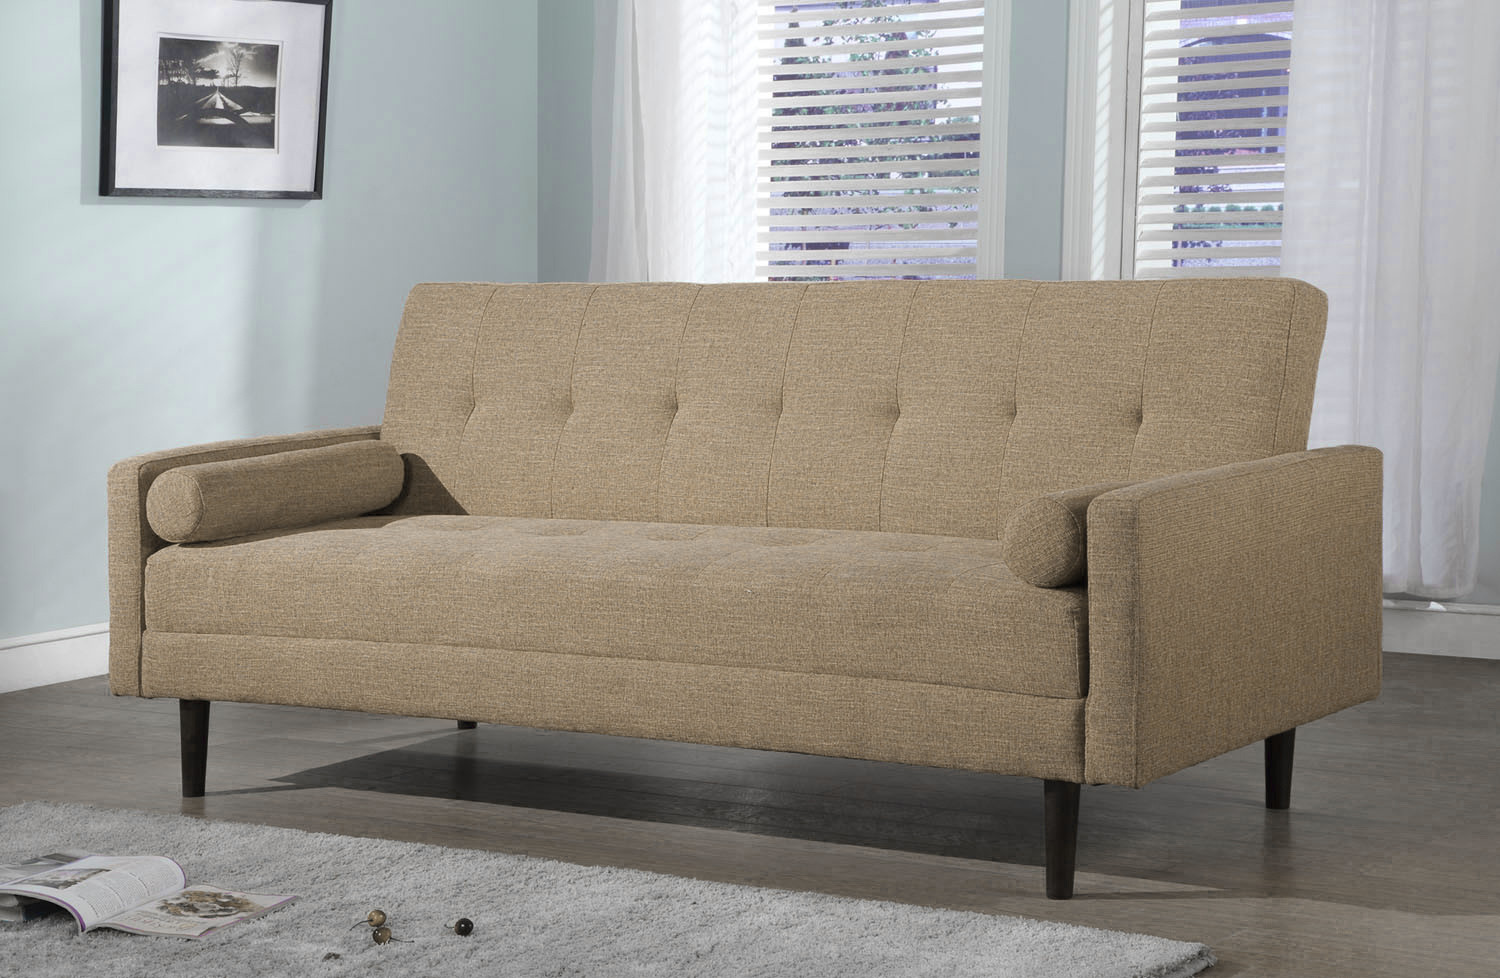 SKU #NGUY1067 Mandi Sofa Bed Is Also Sometimes Listed Under The Following  Manufacturer Numbers: BCL FENDI BEIGE, BCL FENDI CHARCOAL